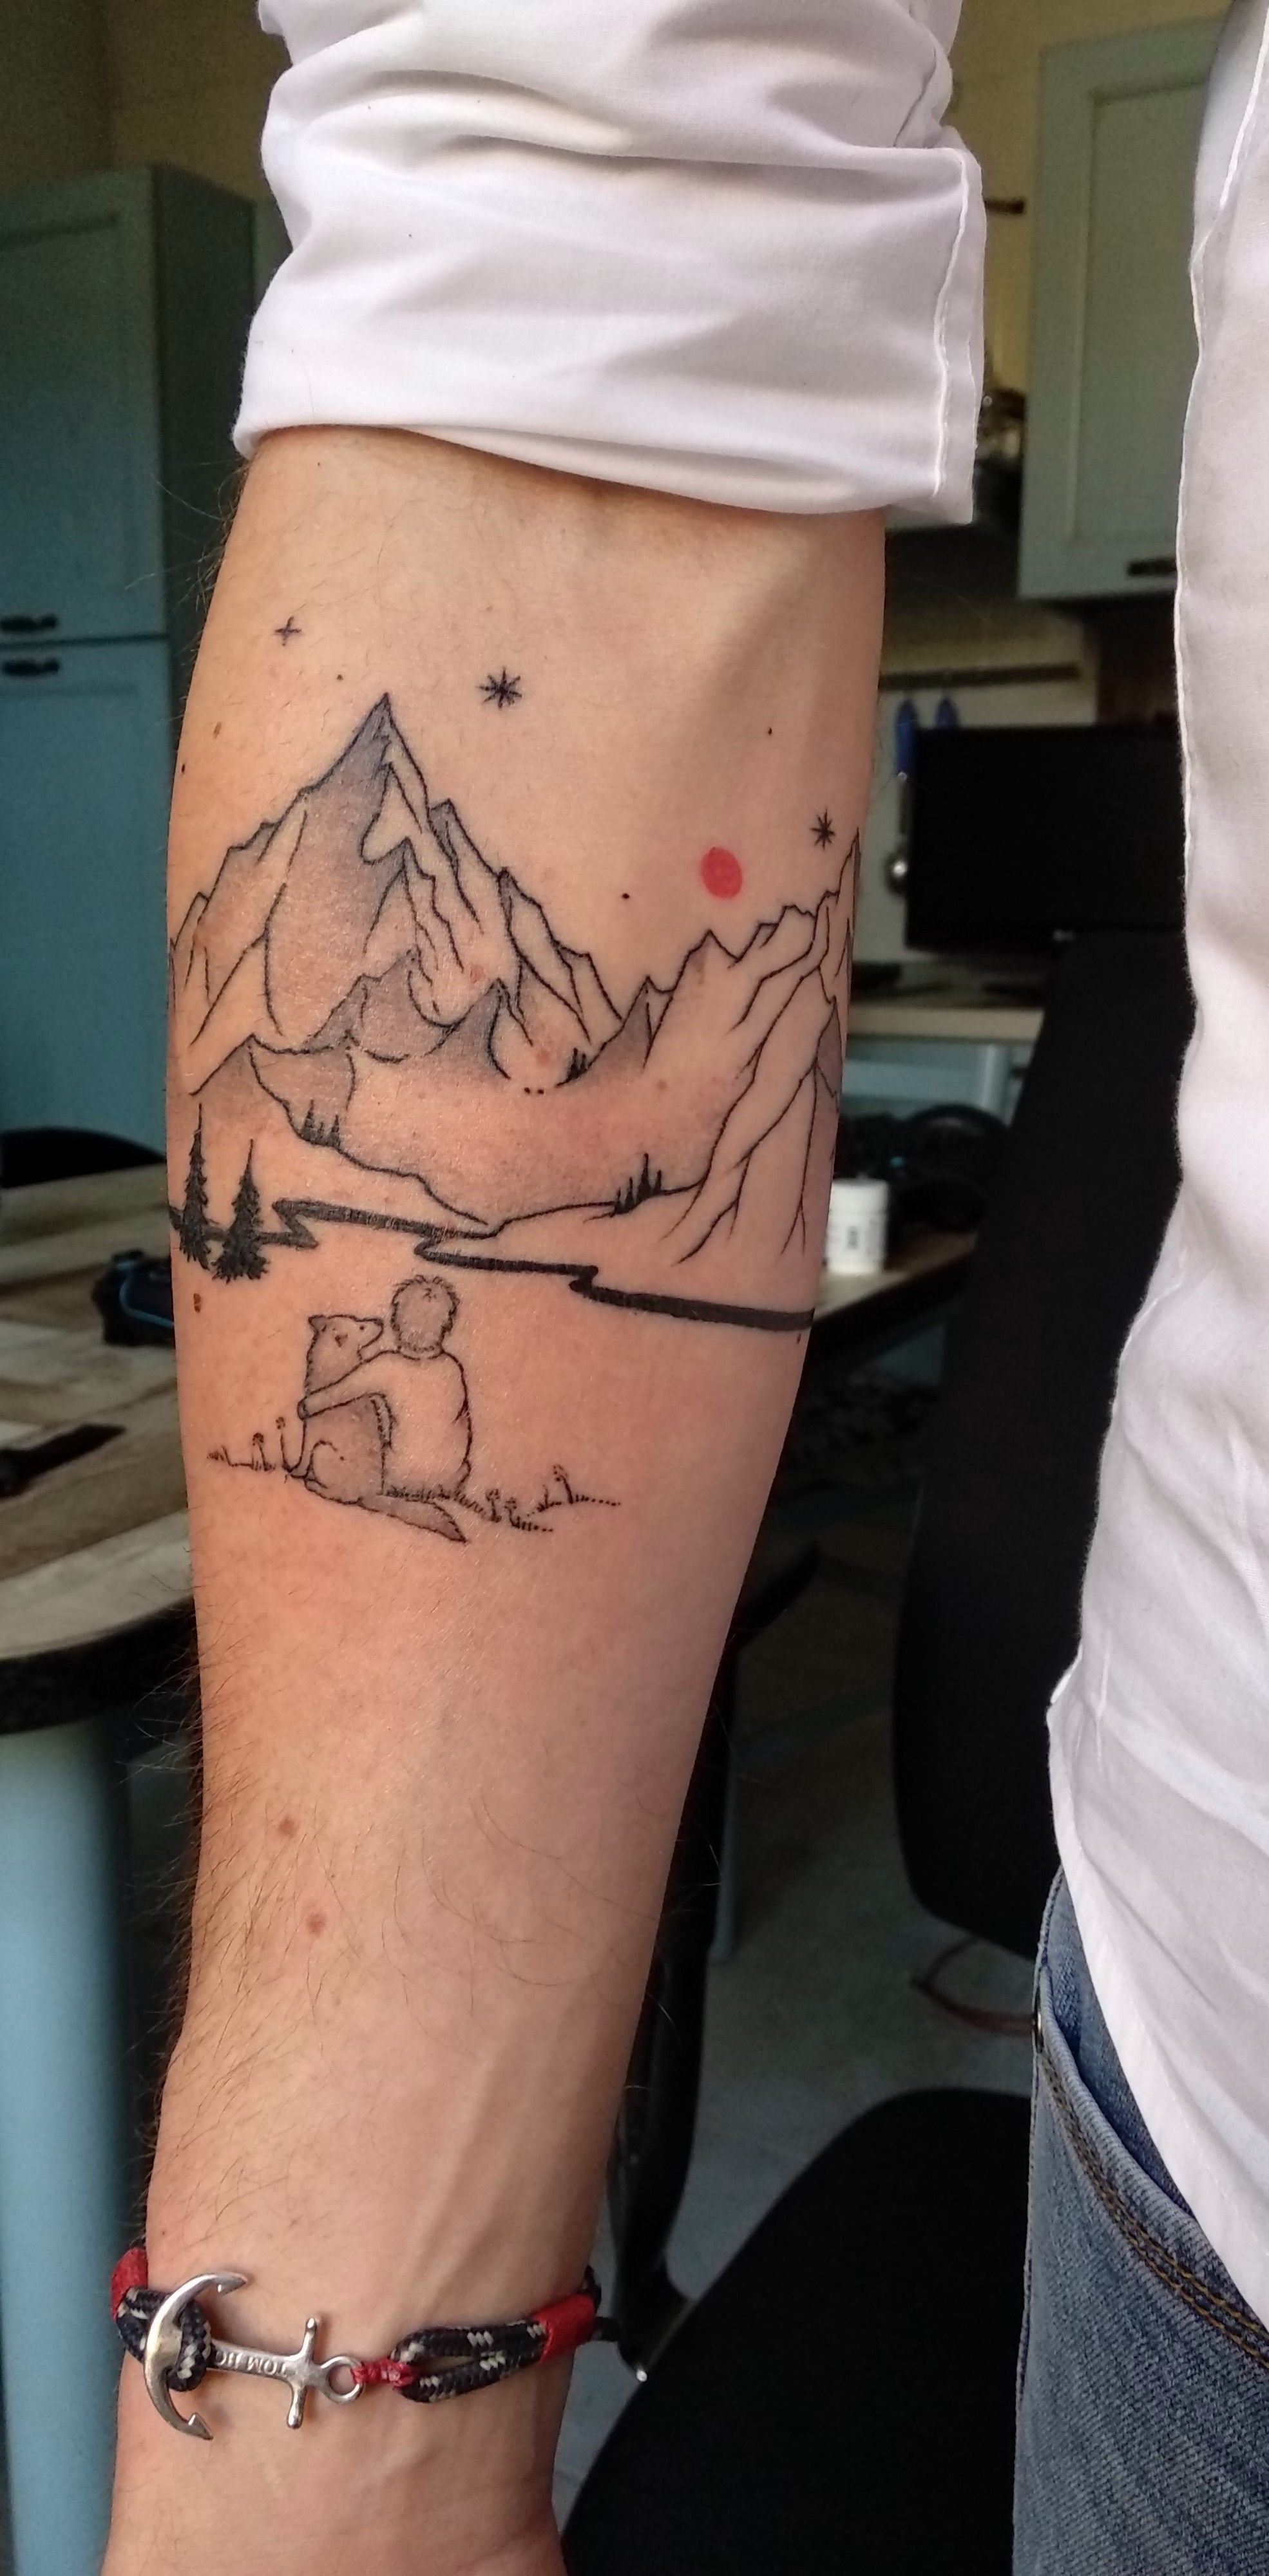 Dog and mountain tattoo image from upjohnx on reddit ink dog and mountain tattoo image from upjohnx on reddit gumiabroncs Images